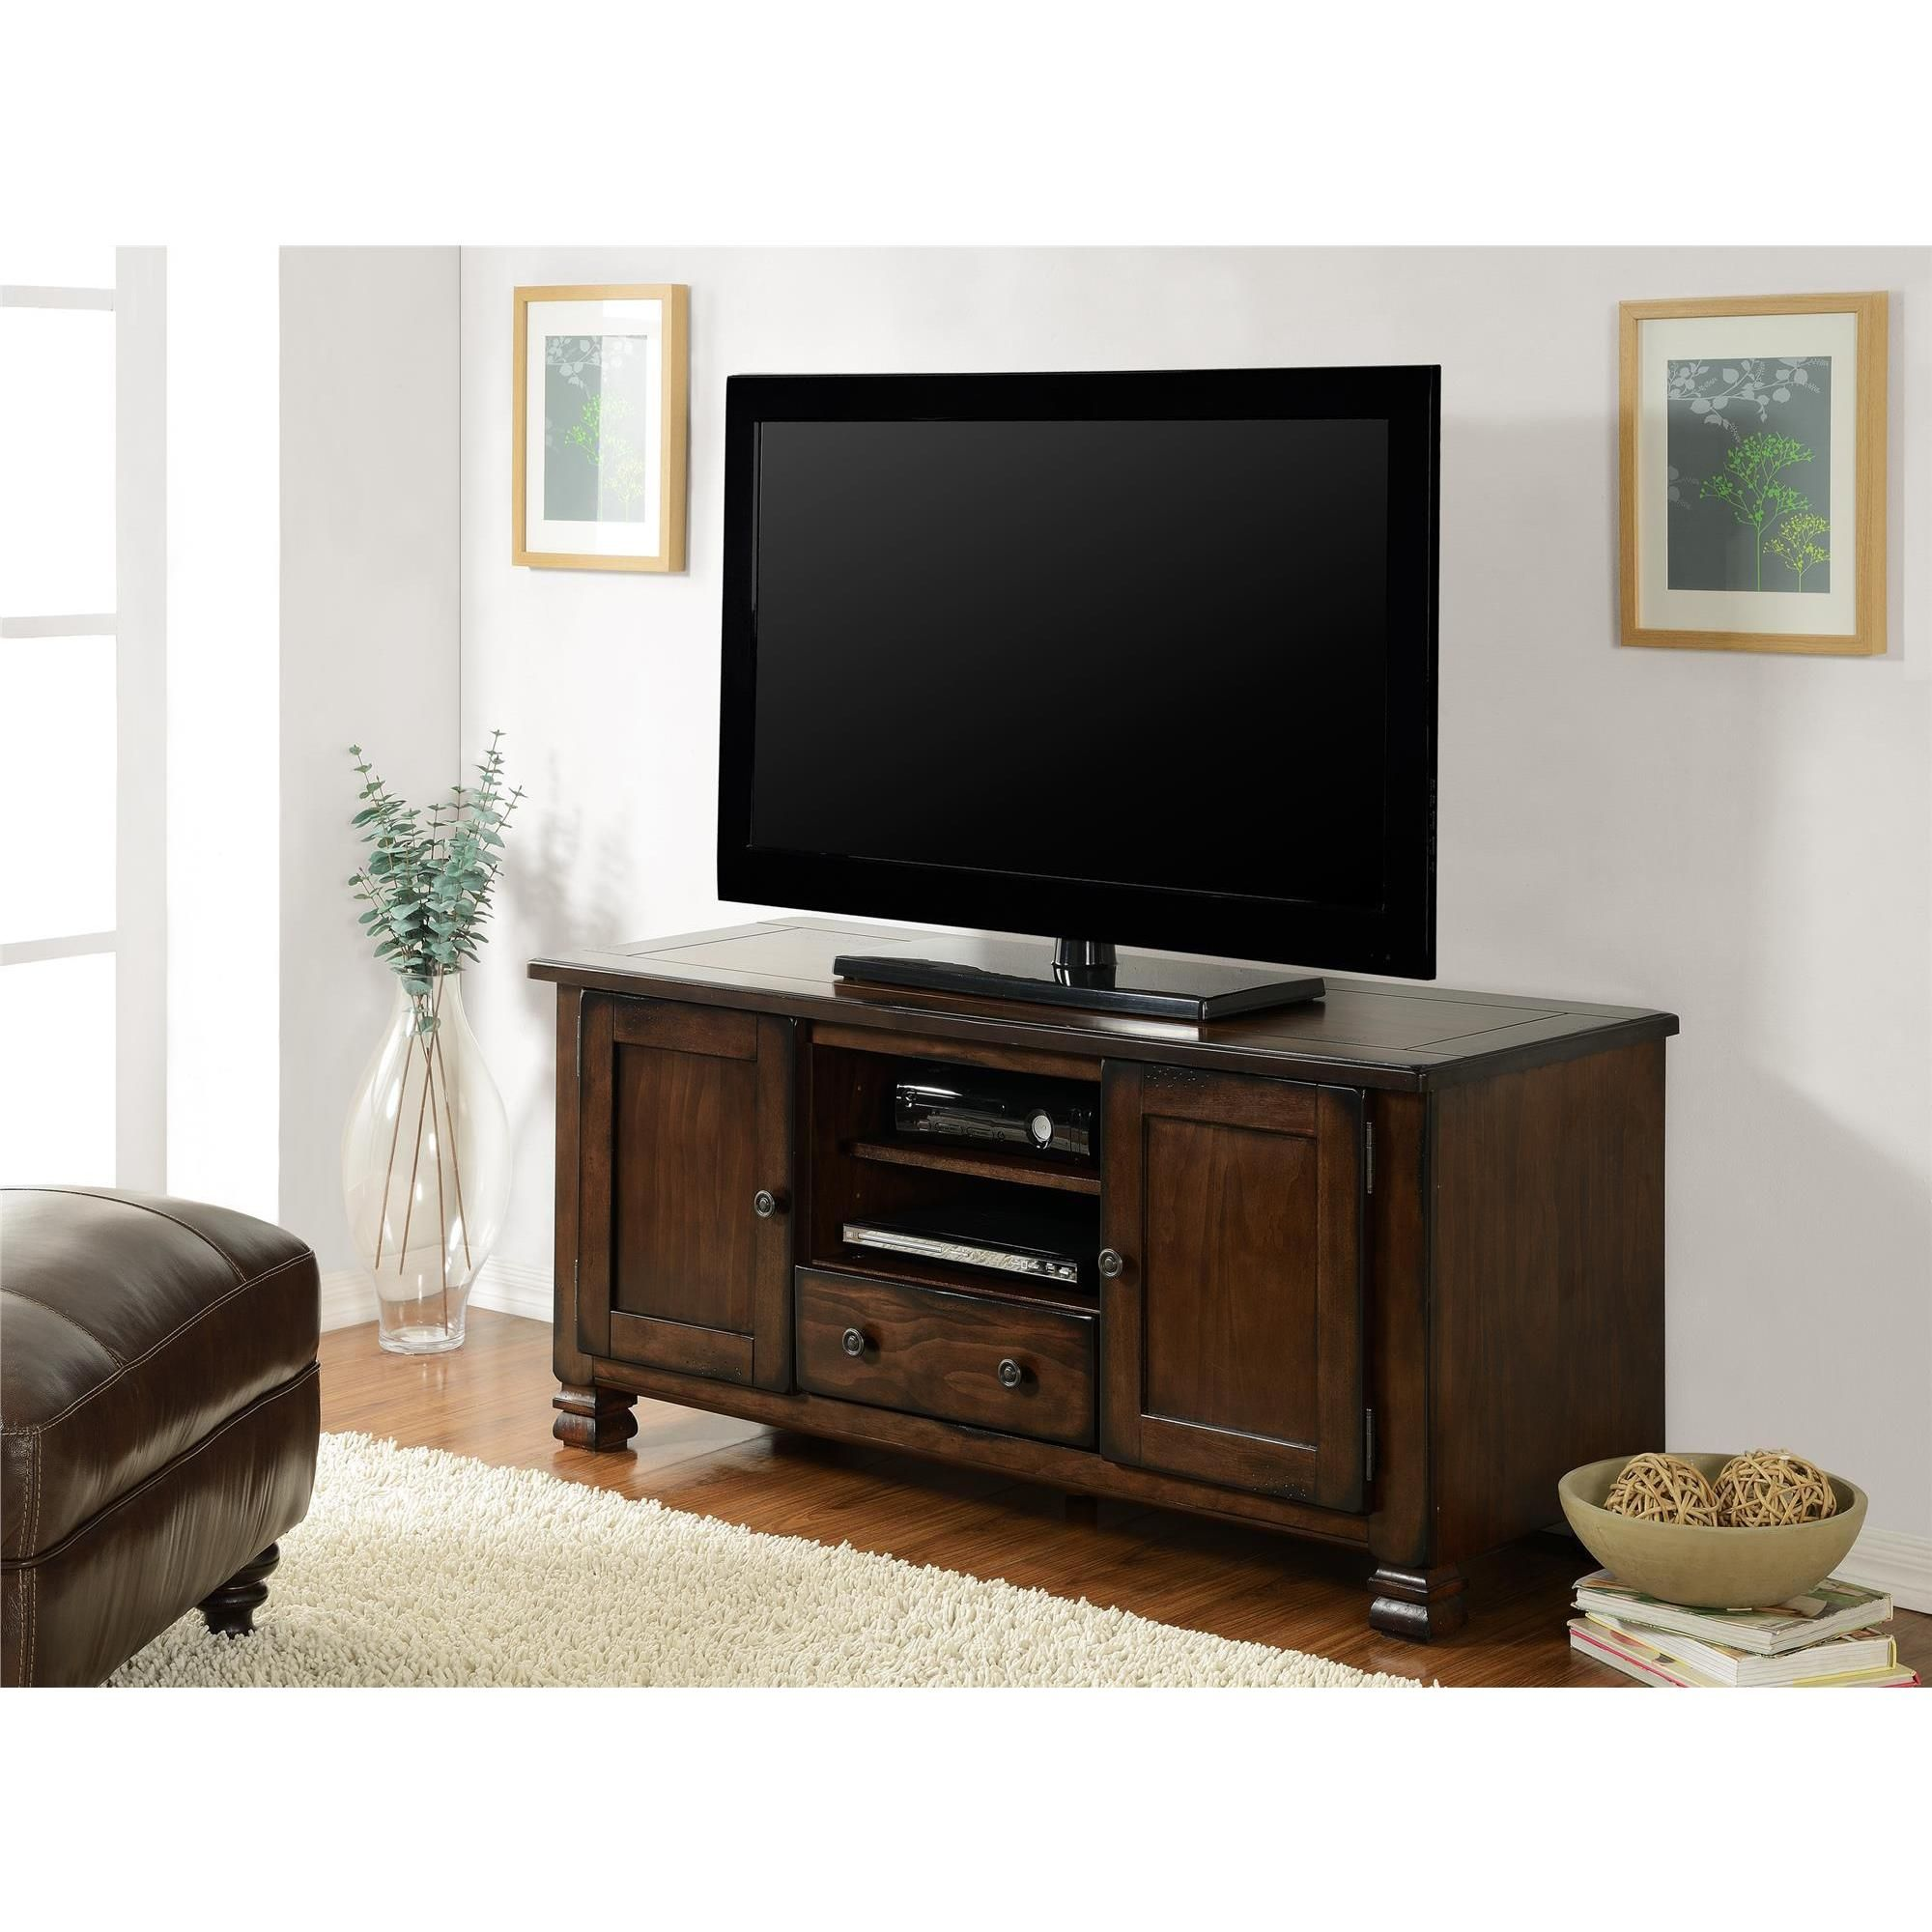 Elegant Tv Cabinets for 55 Inch Flat Screens